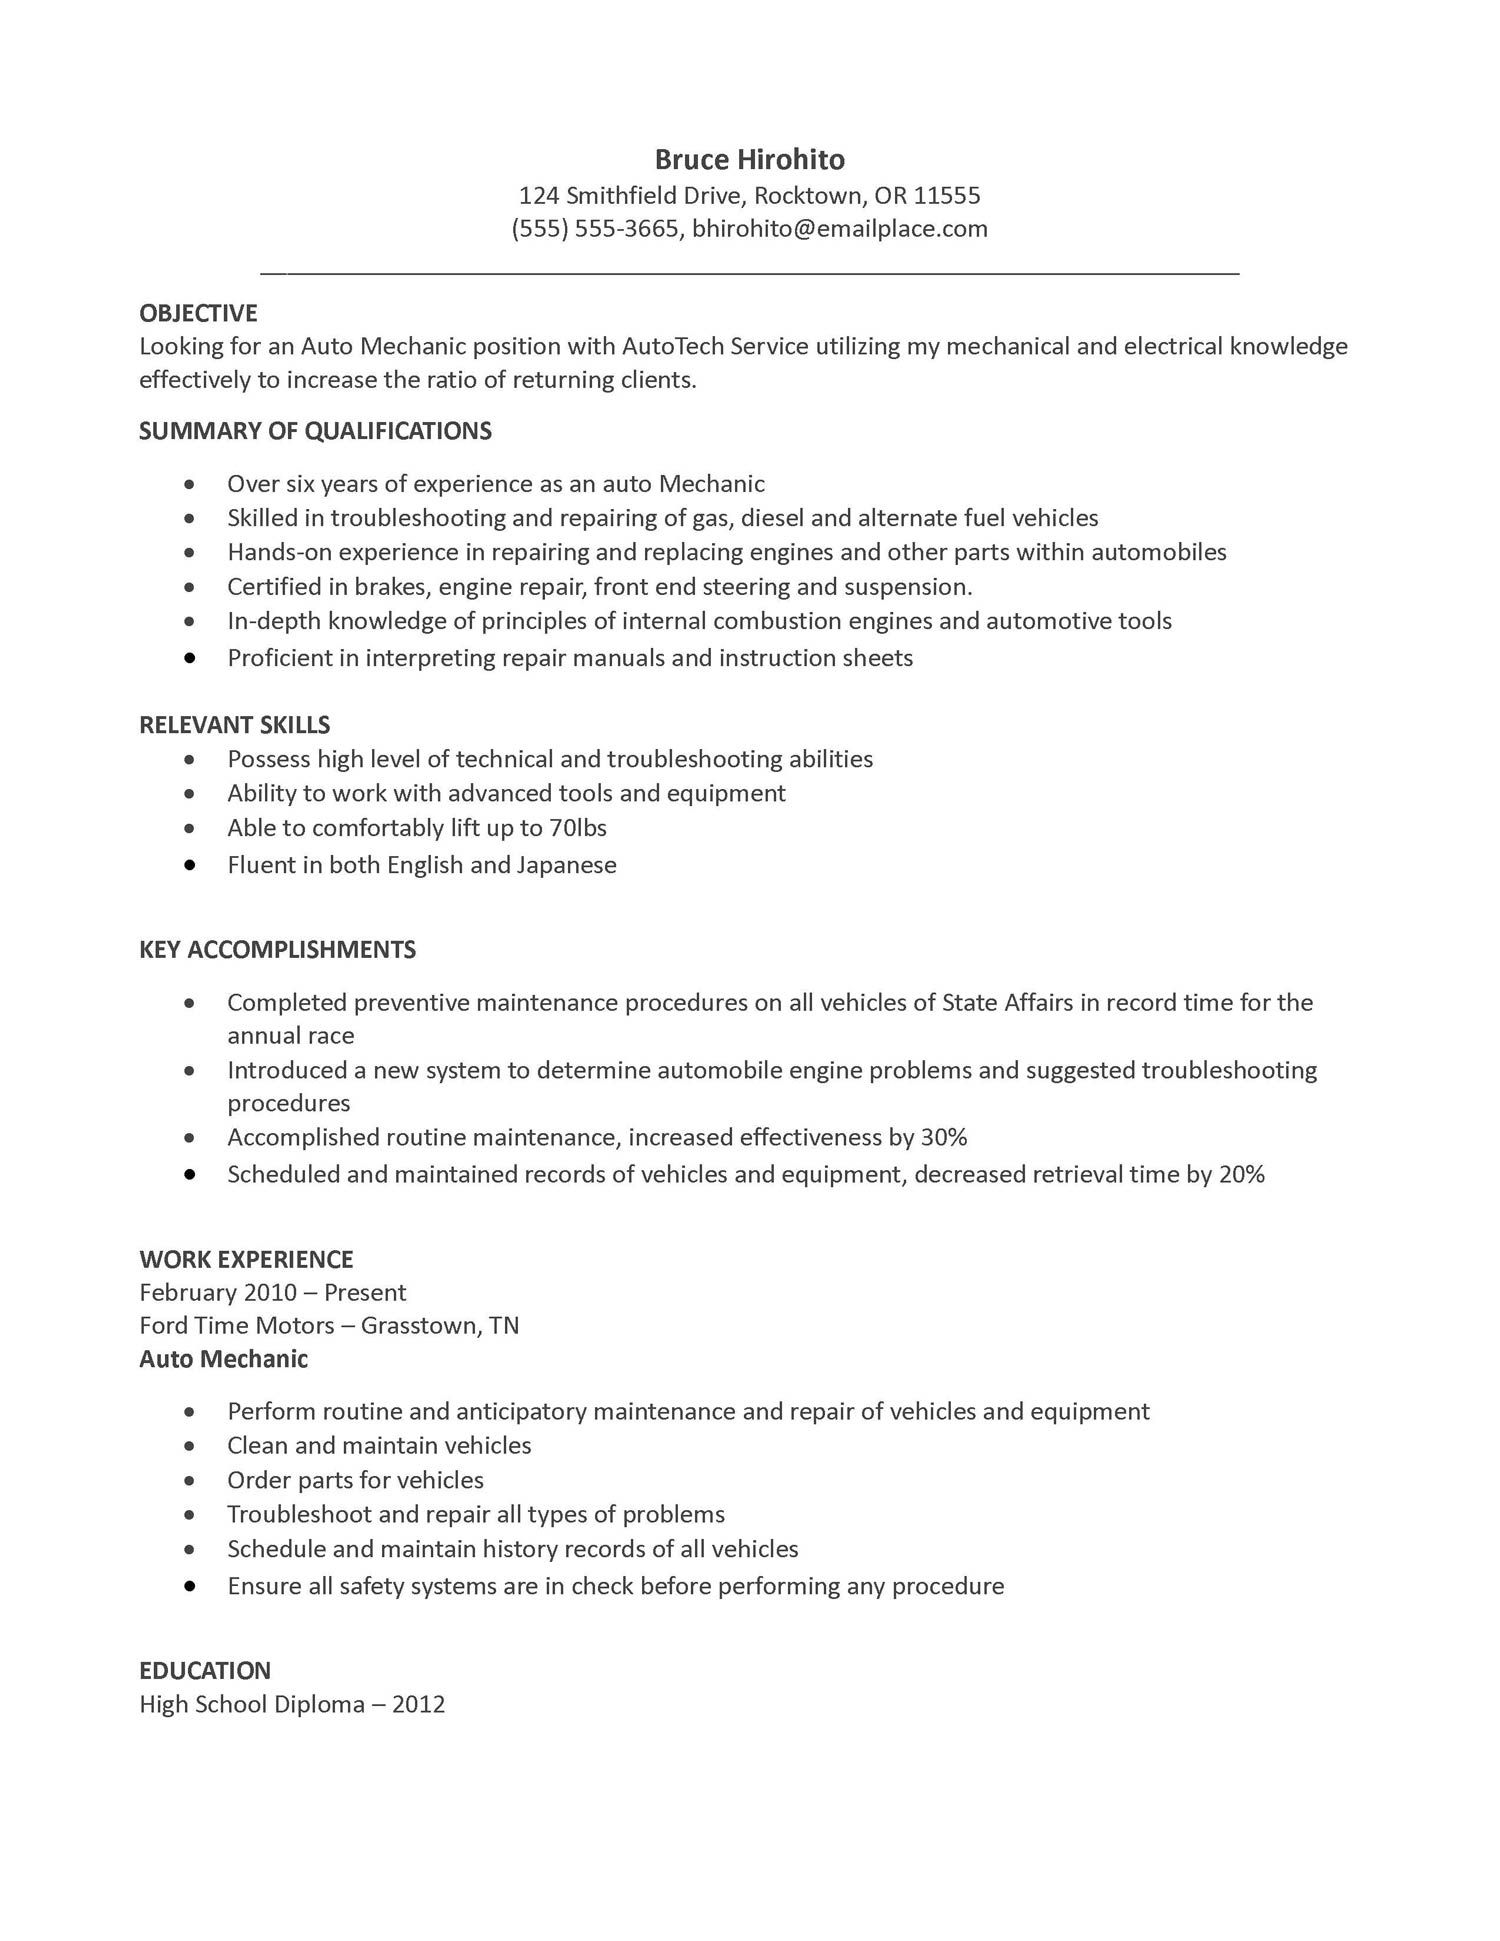 resume sample auto mechanic objective examples diesel hospitality management summary or Resume Diesel Mechanic Resume Objective